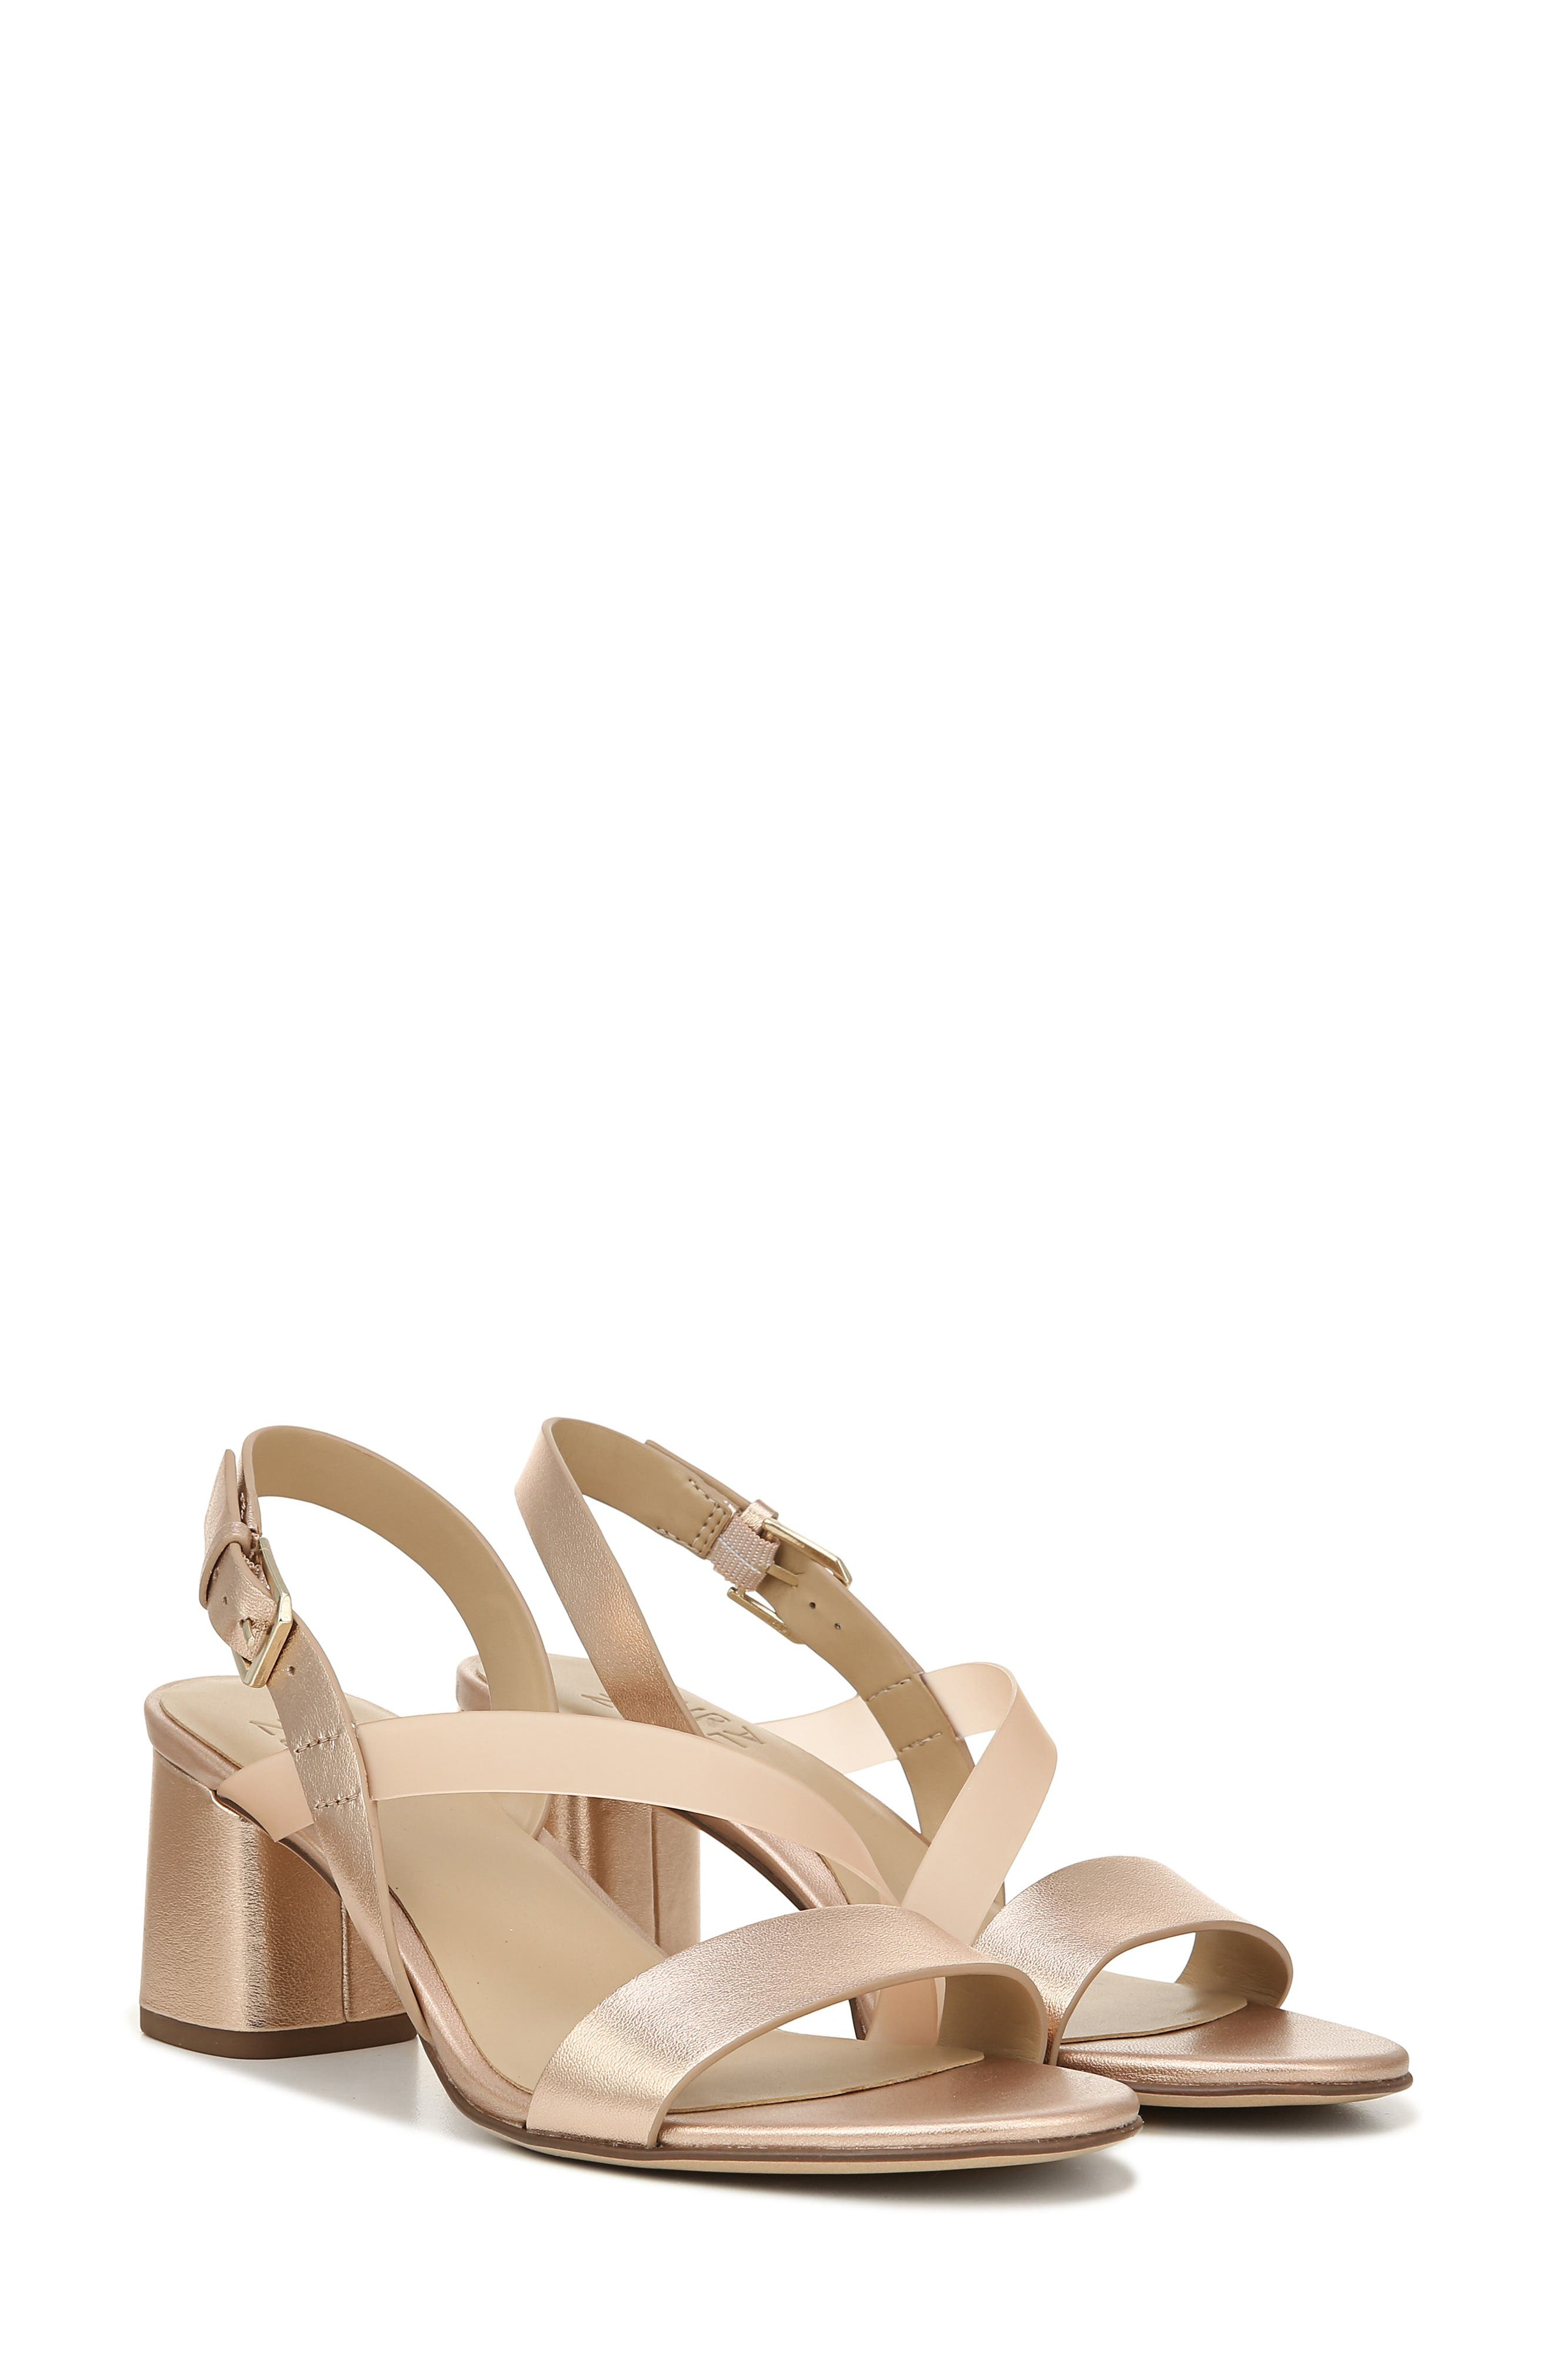 NATURALIZER, Arianna Block Heel Sandal, Alternate thumbnail 8, color, ROSE GOLD LEATHER